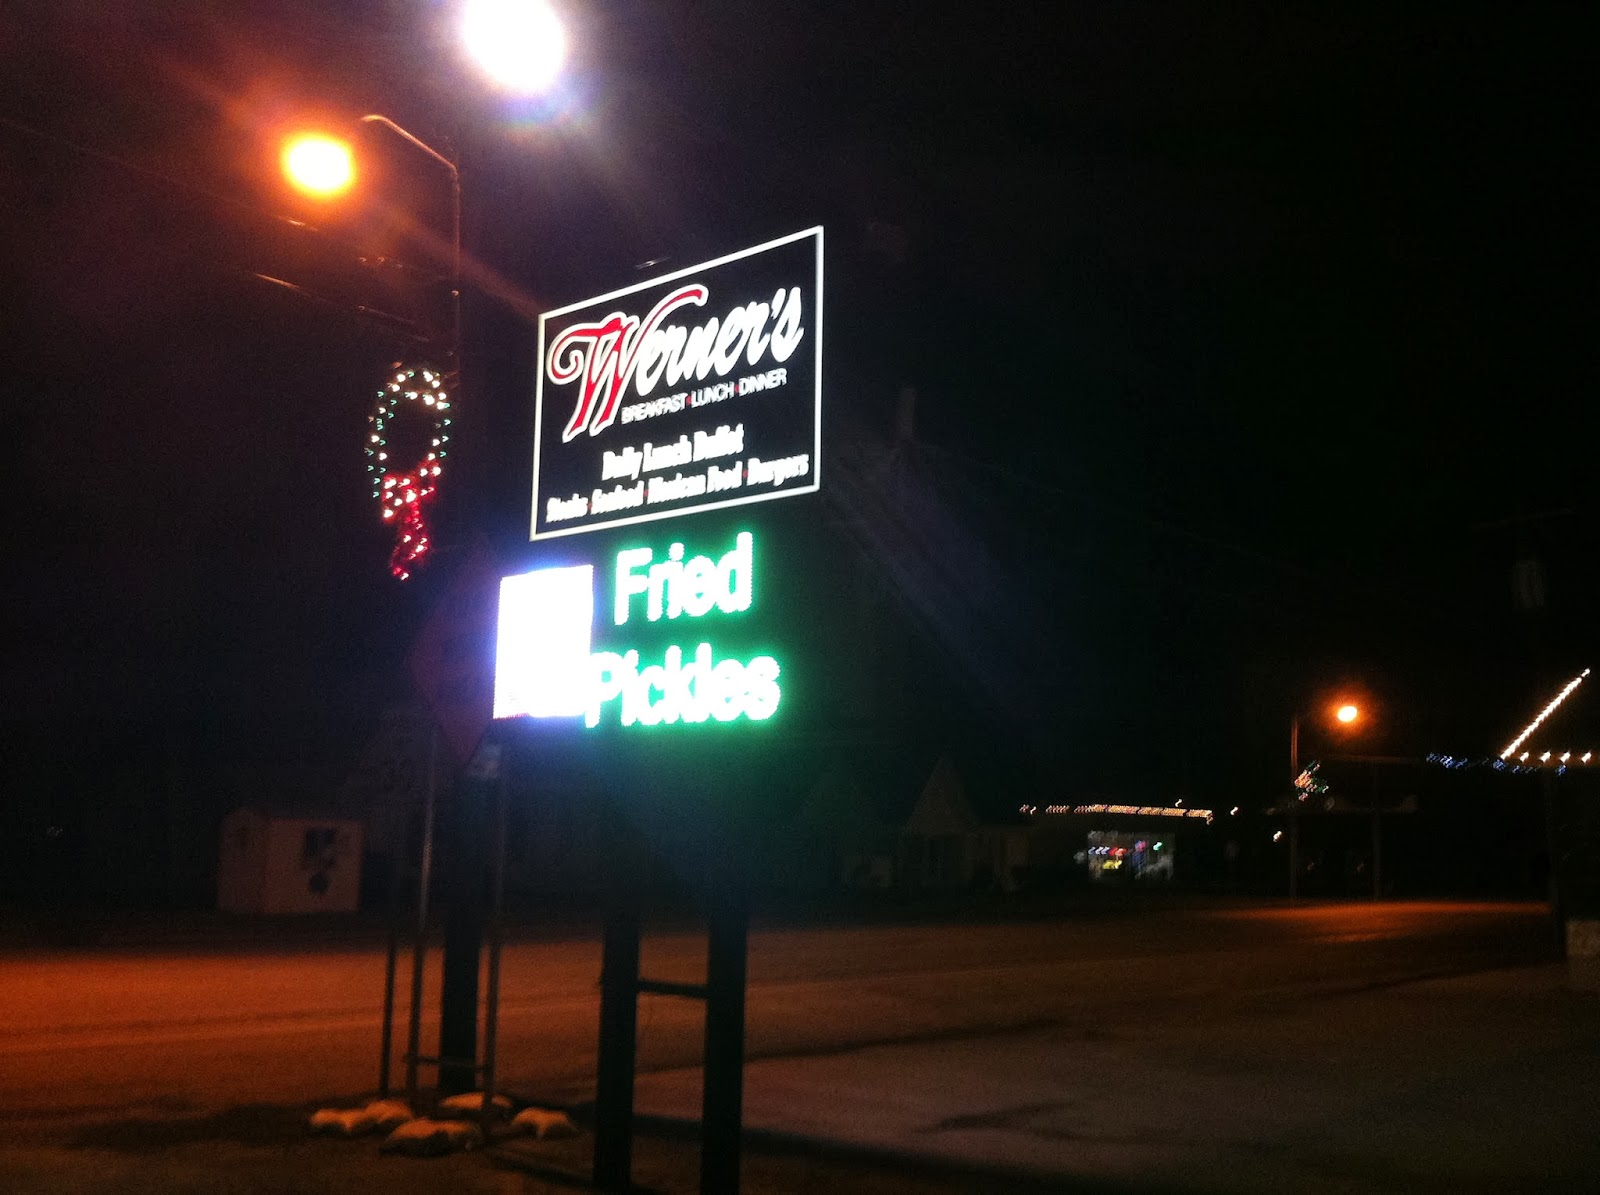 At 8 30pm On A Sunday Werner S Was The Only Restaurant We Found Open Our Drive Home Aside From Usual Cast Of Fast Food Joints